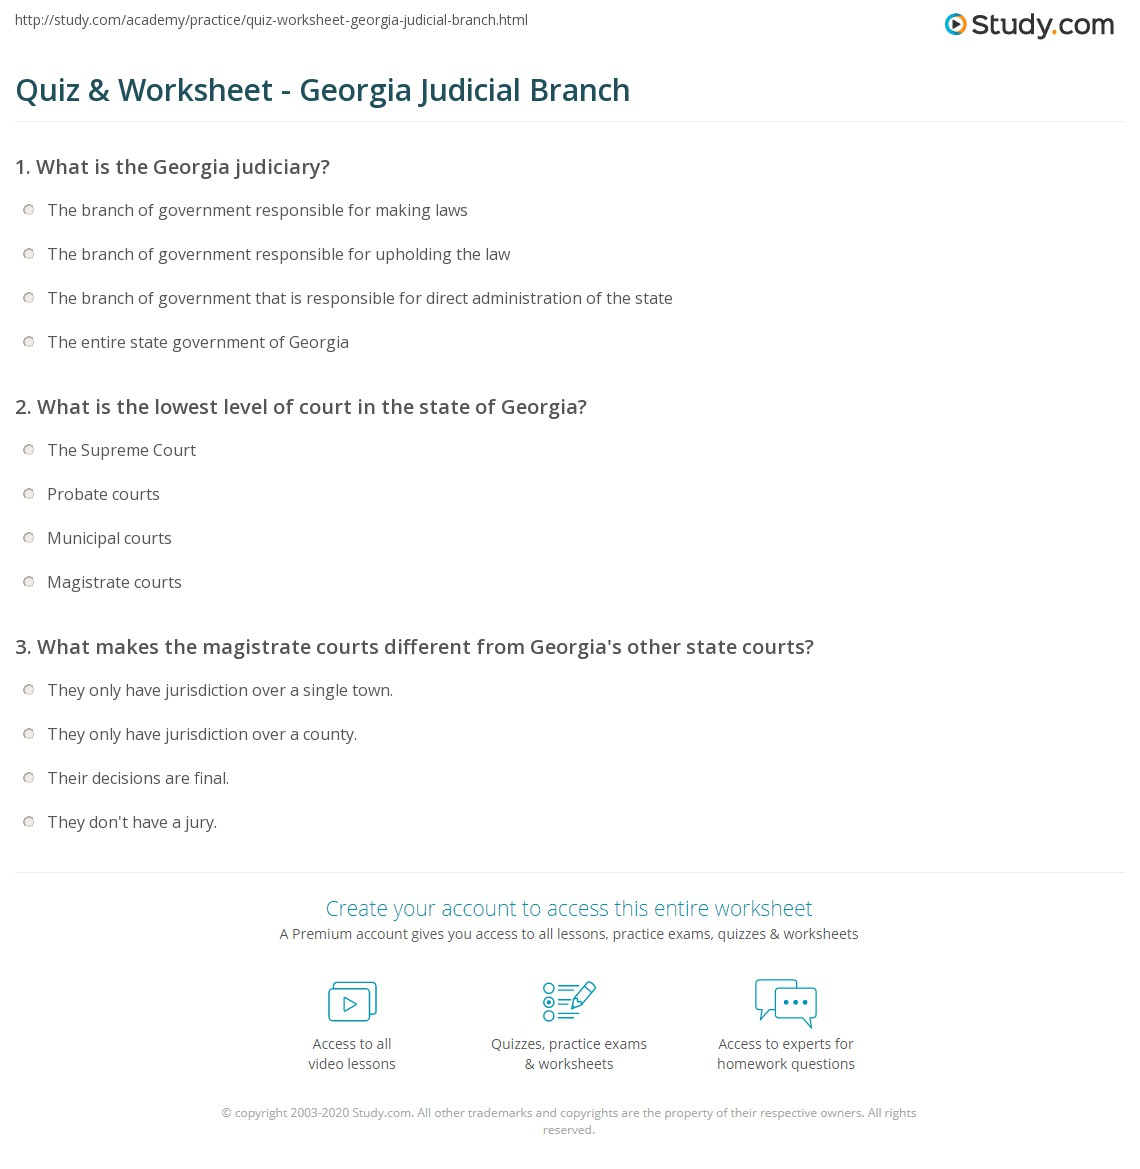 Worksheets Judicial Branch Worksheet quiz worksheet georgia judicial branch study com print structure processes of the worksheet